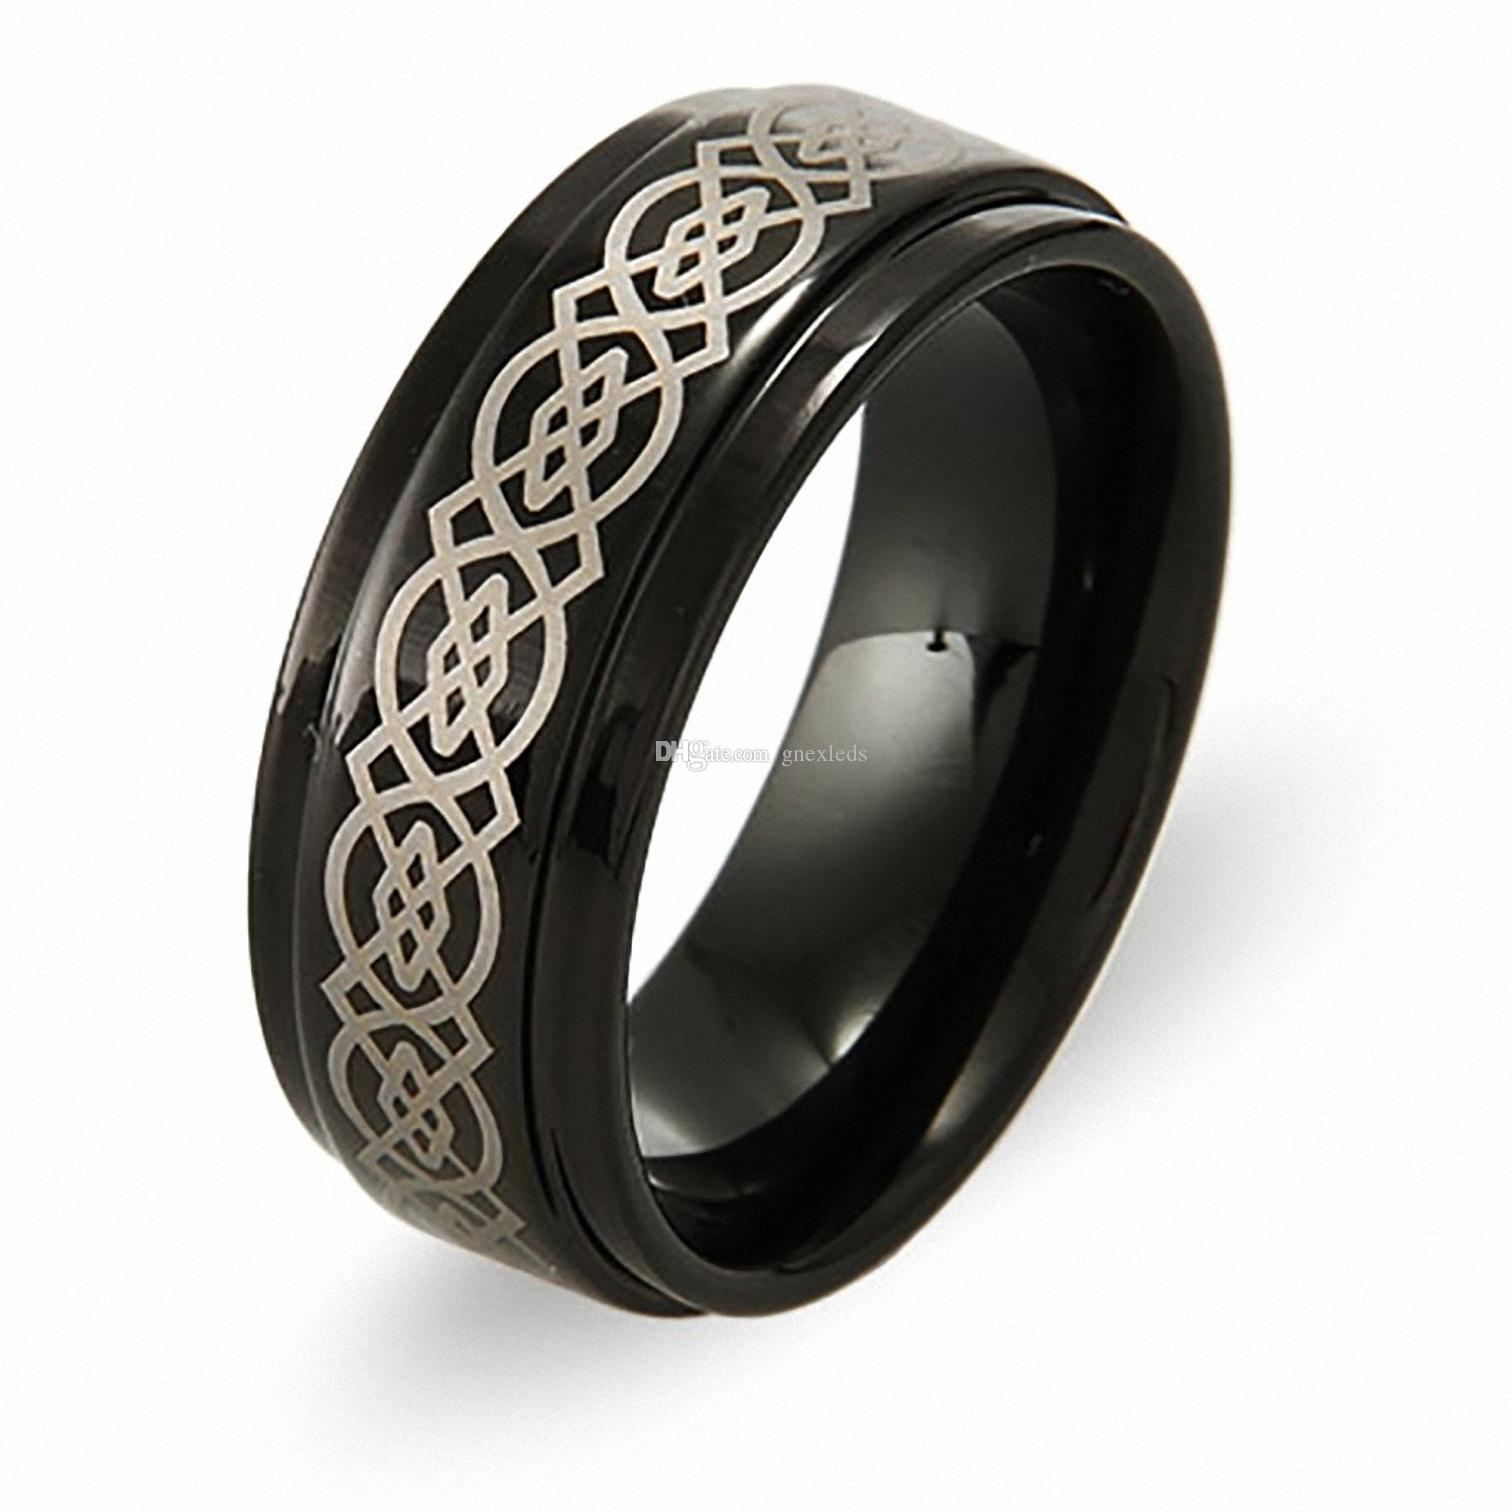 steel rings wikipedia iron wiki wedding mechanical ring